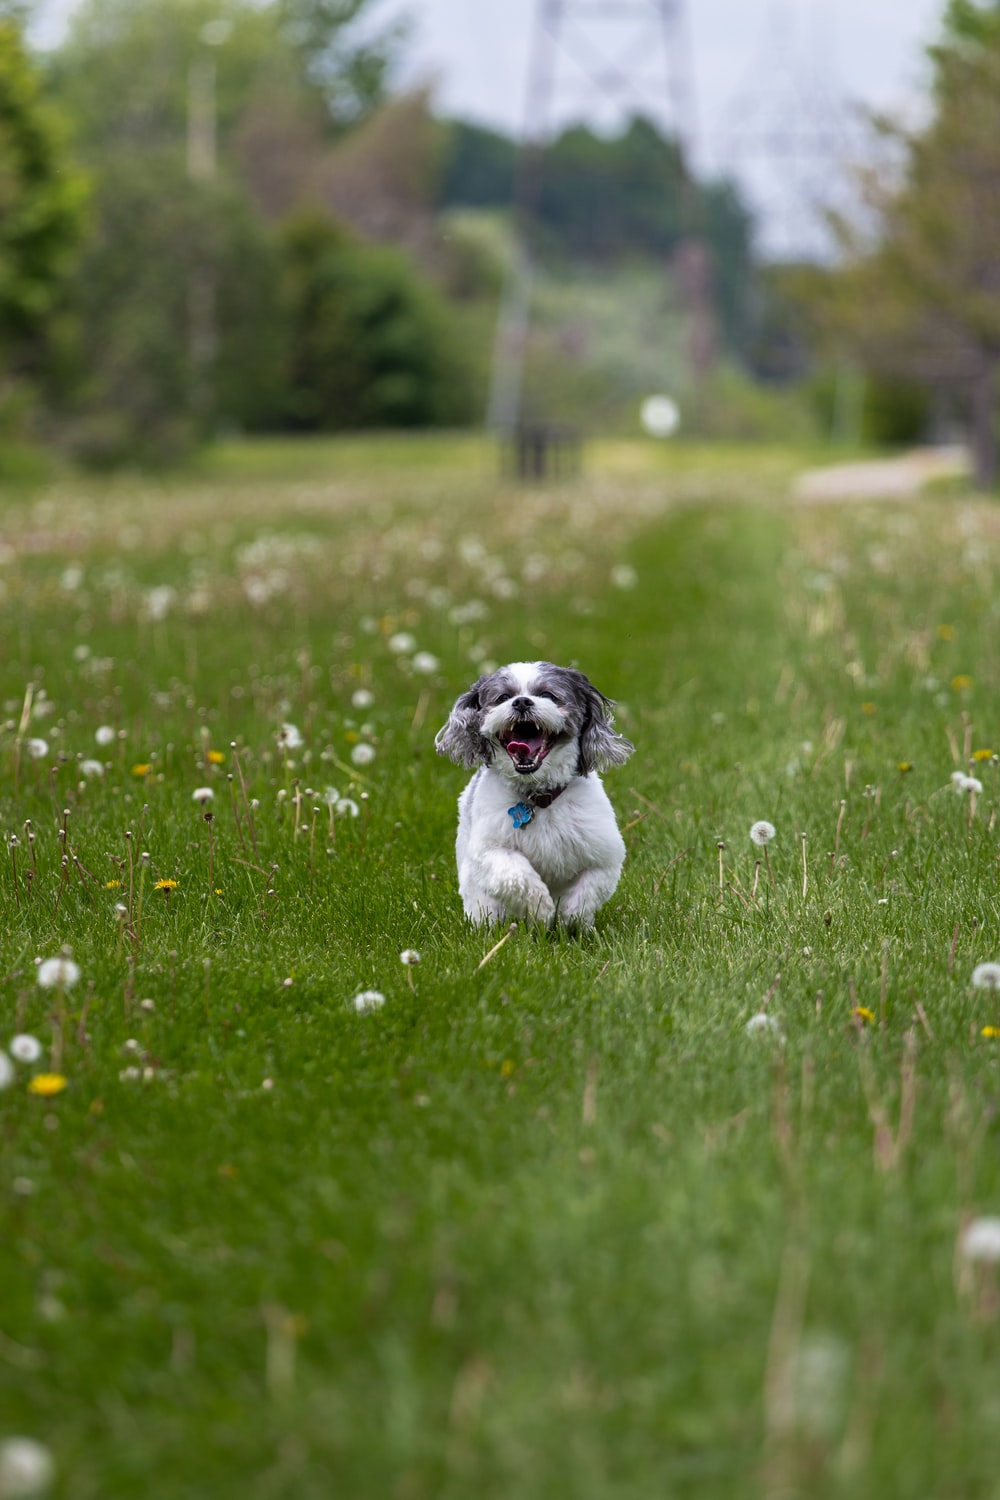 white and black shih tzu puppy on green grass field during daytime